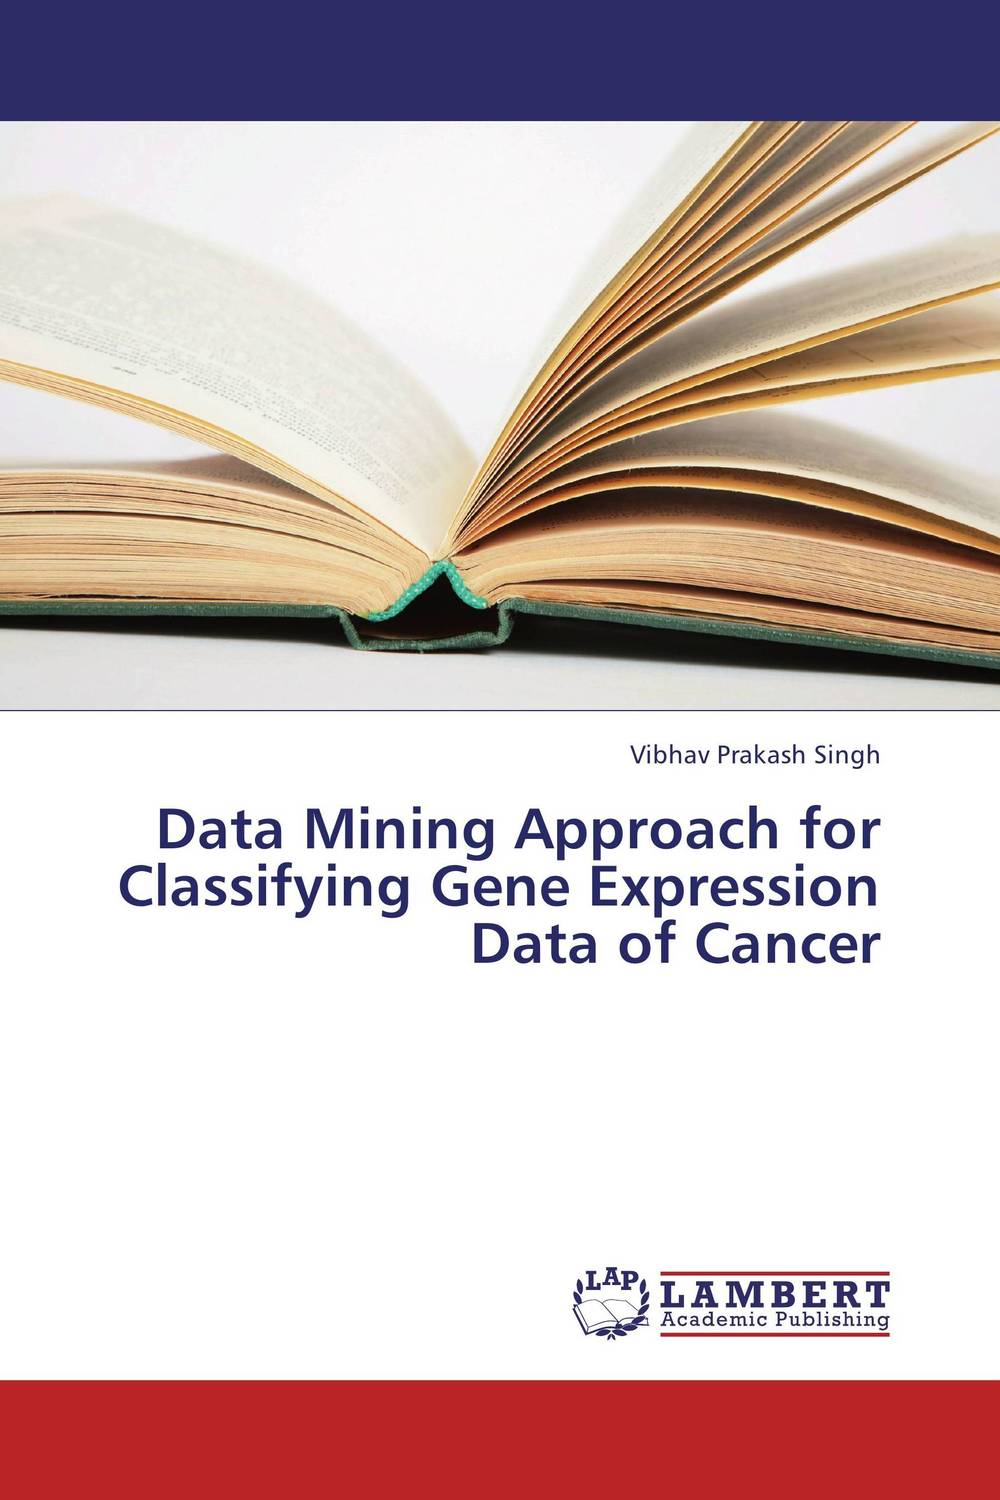 Data Mining Approach for Classifying Gene Expression Data of Cancer use of classification algorithm under data mining for managing asthma